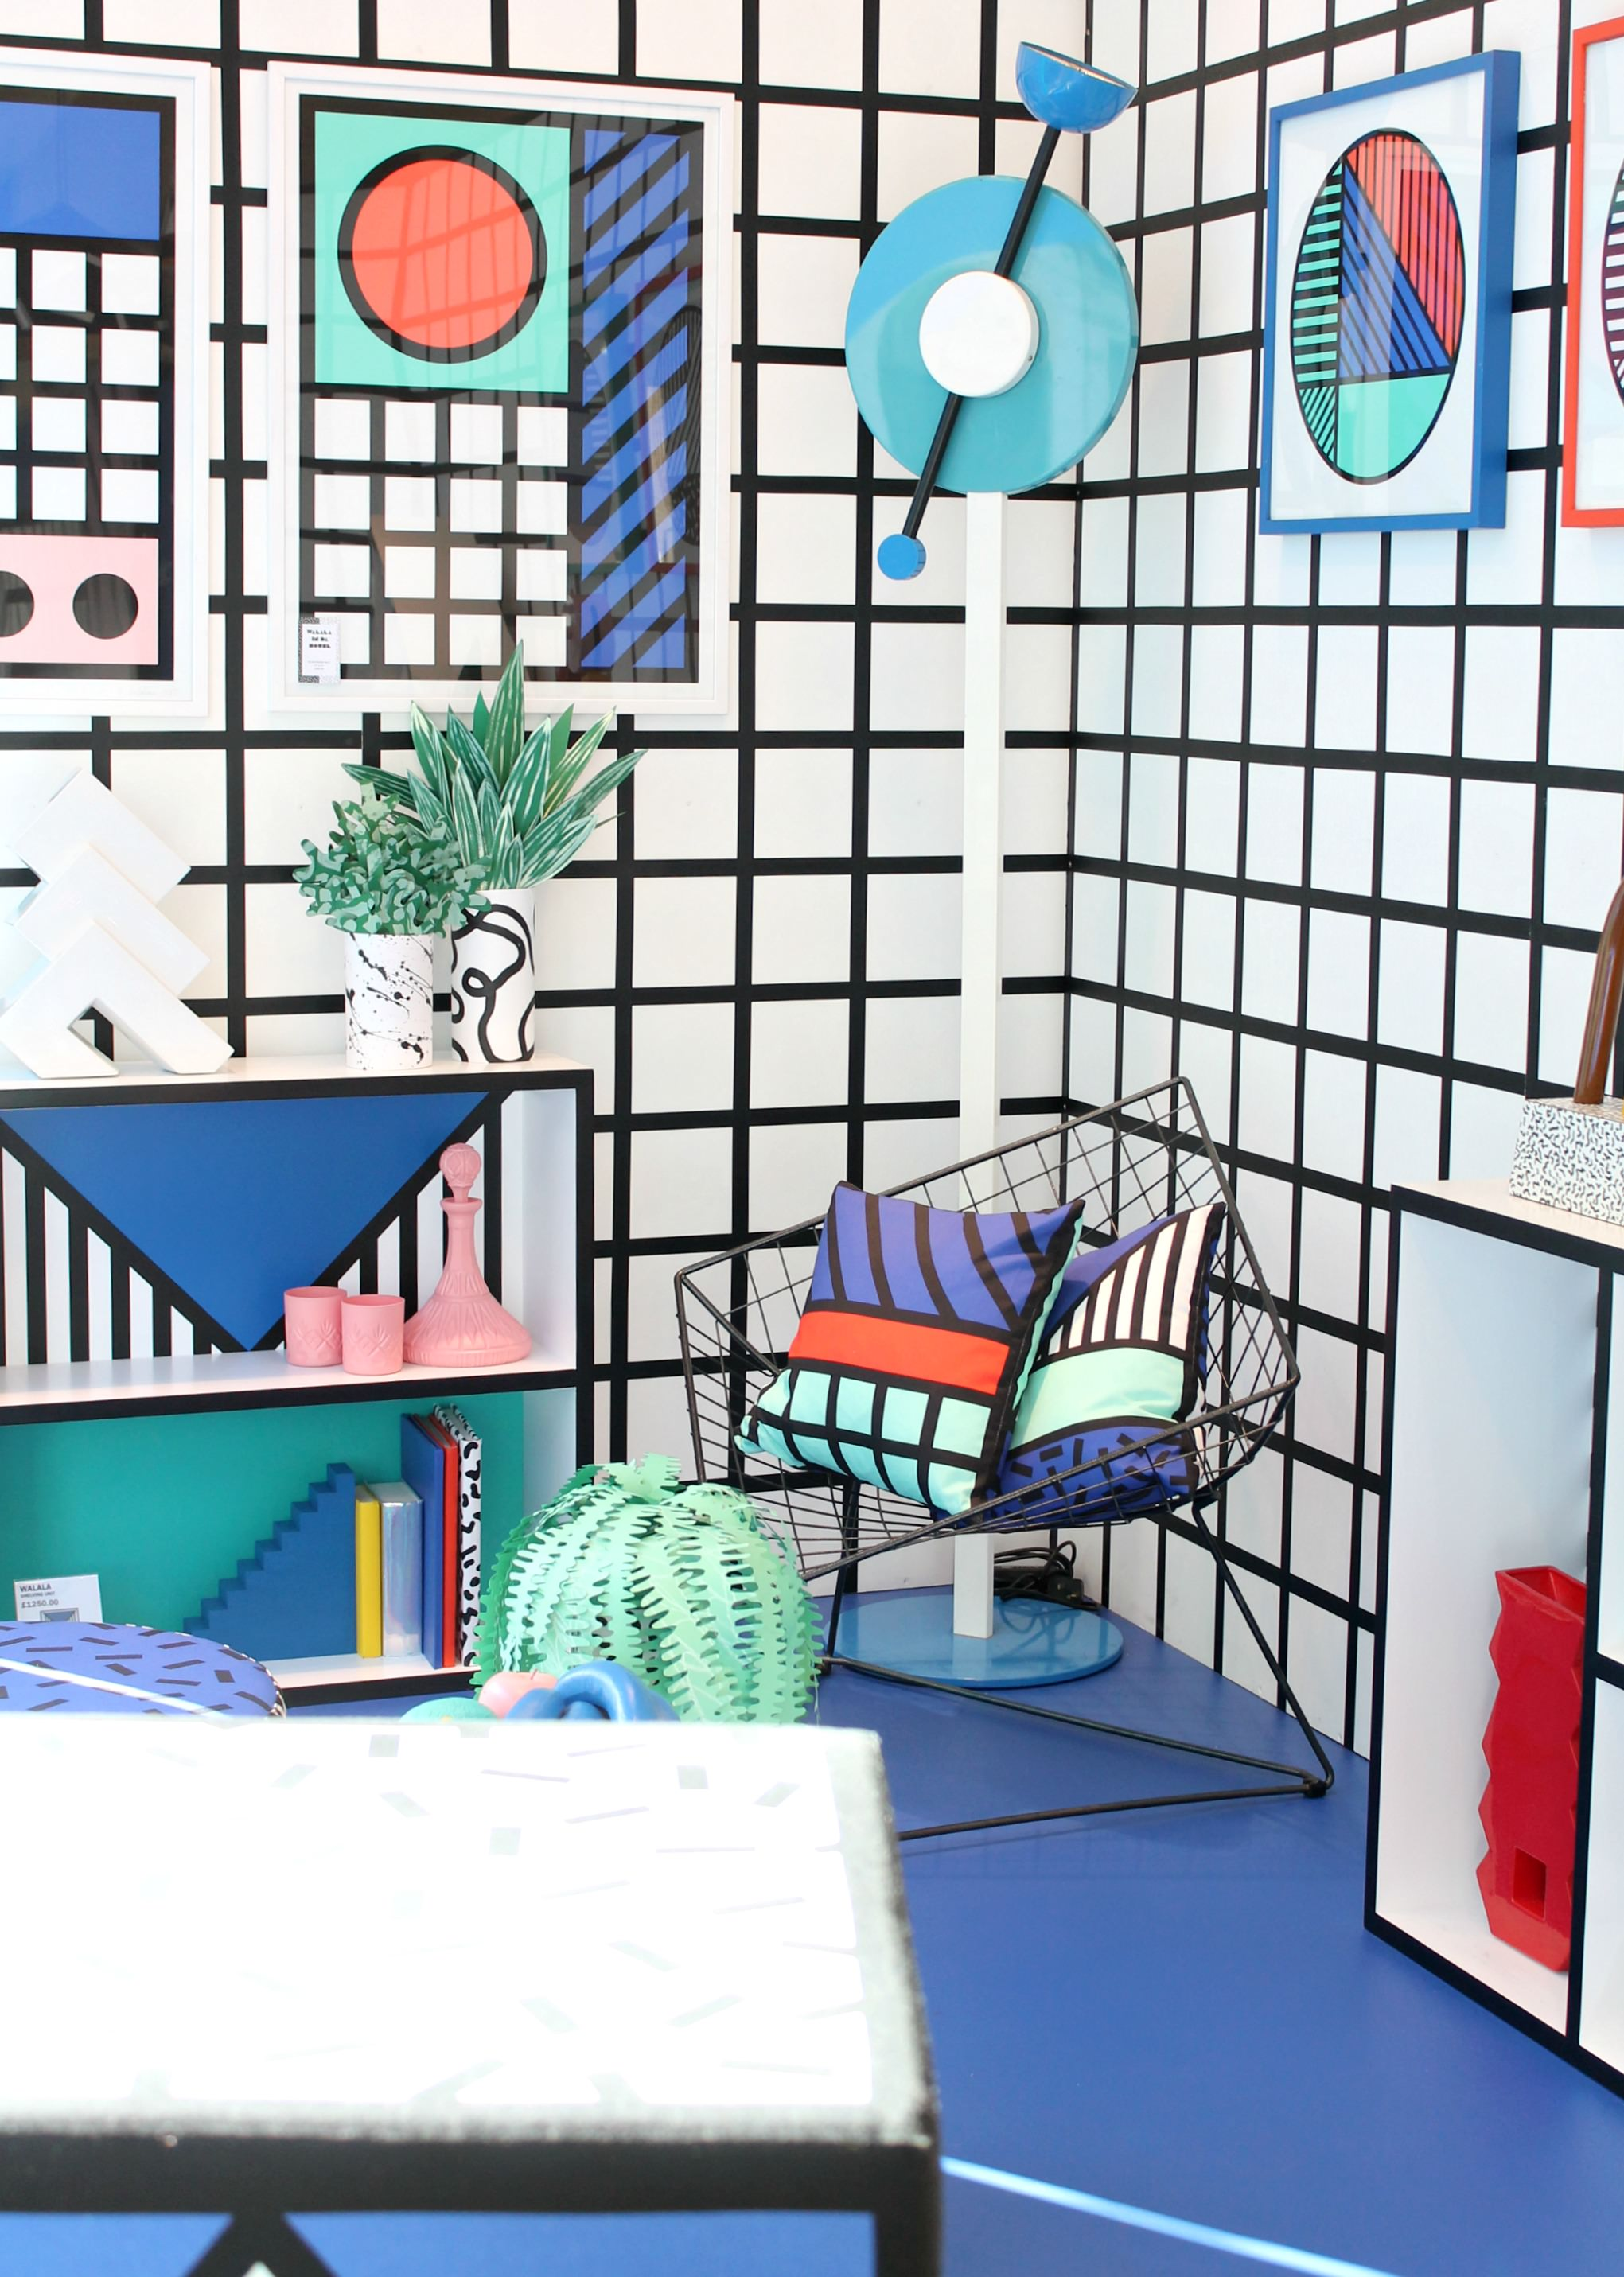 memphis-design-camille-walala-london-design-festival-photo-by-little-big-bell1